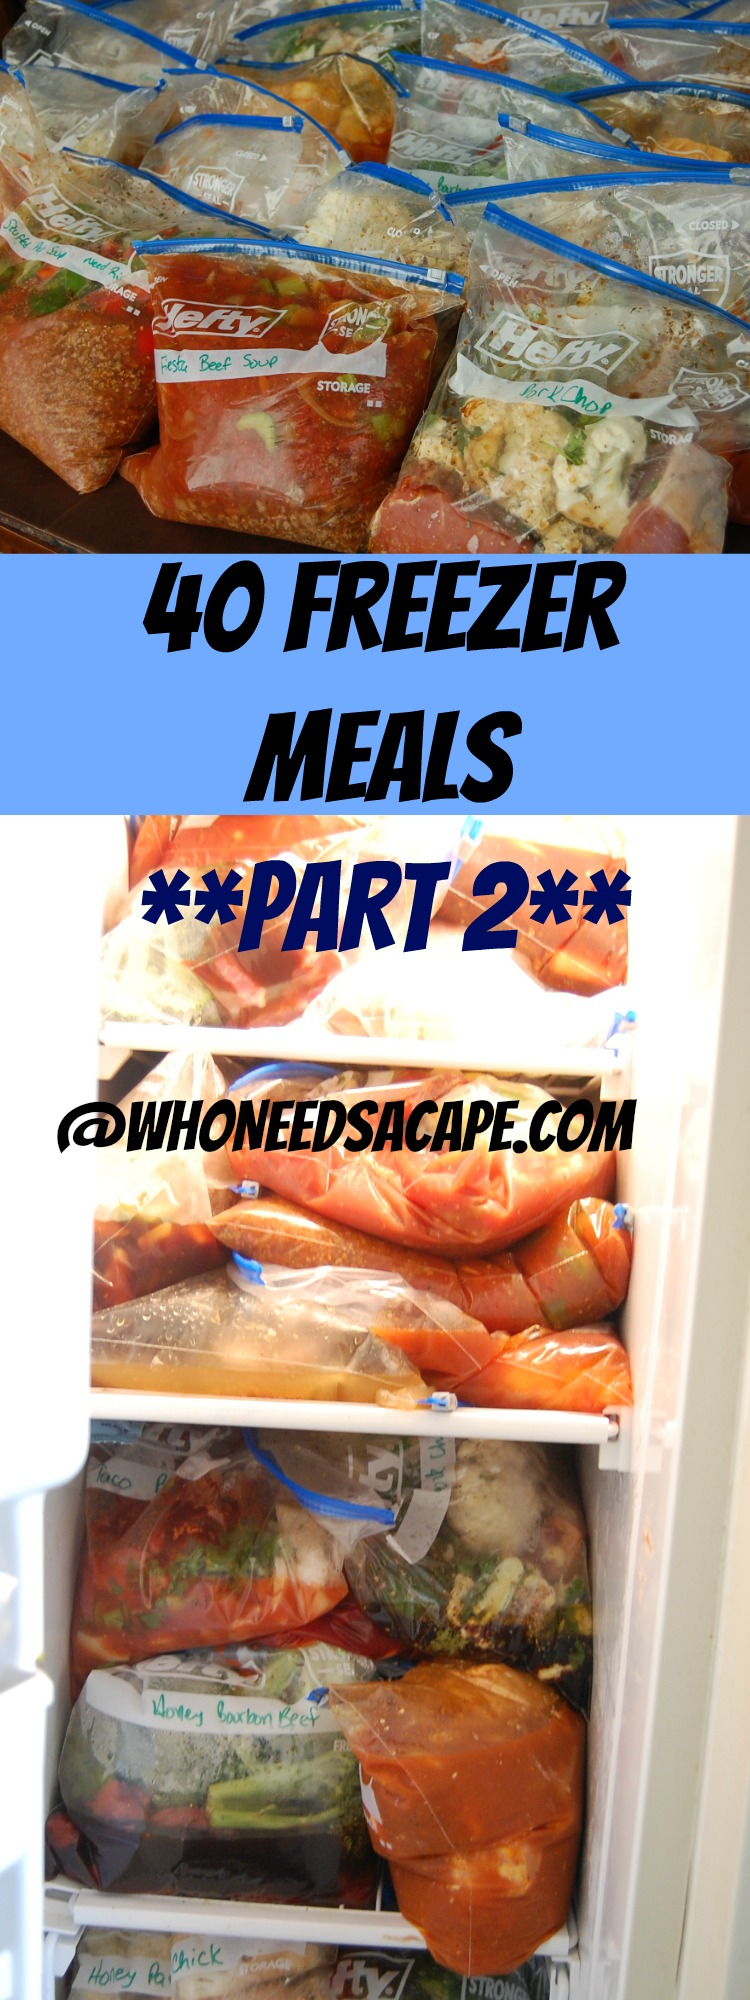 40 Freezer Meals Part 2 - a BRAND new set of Freezer meals. It will save you time and money - it's a must do for a busy family!!!! Grocery list INCLUDED